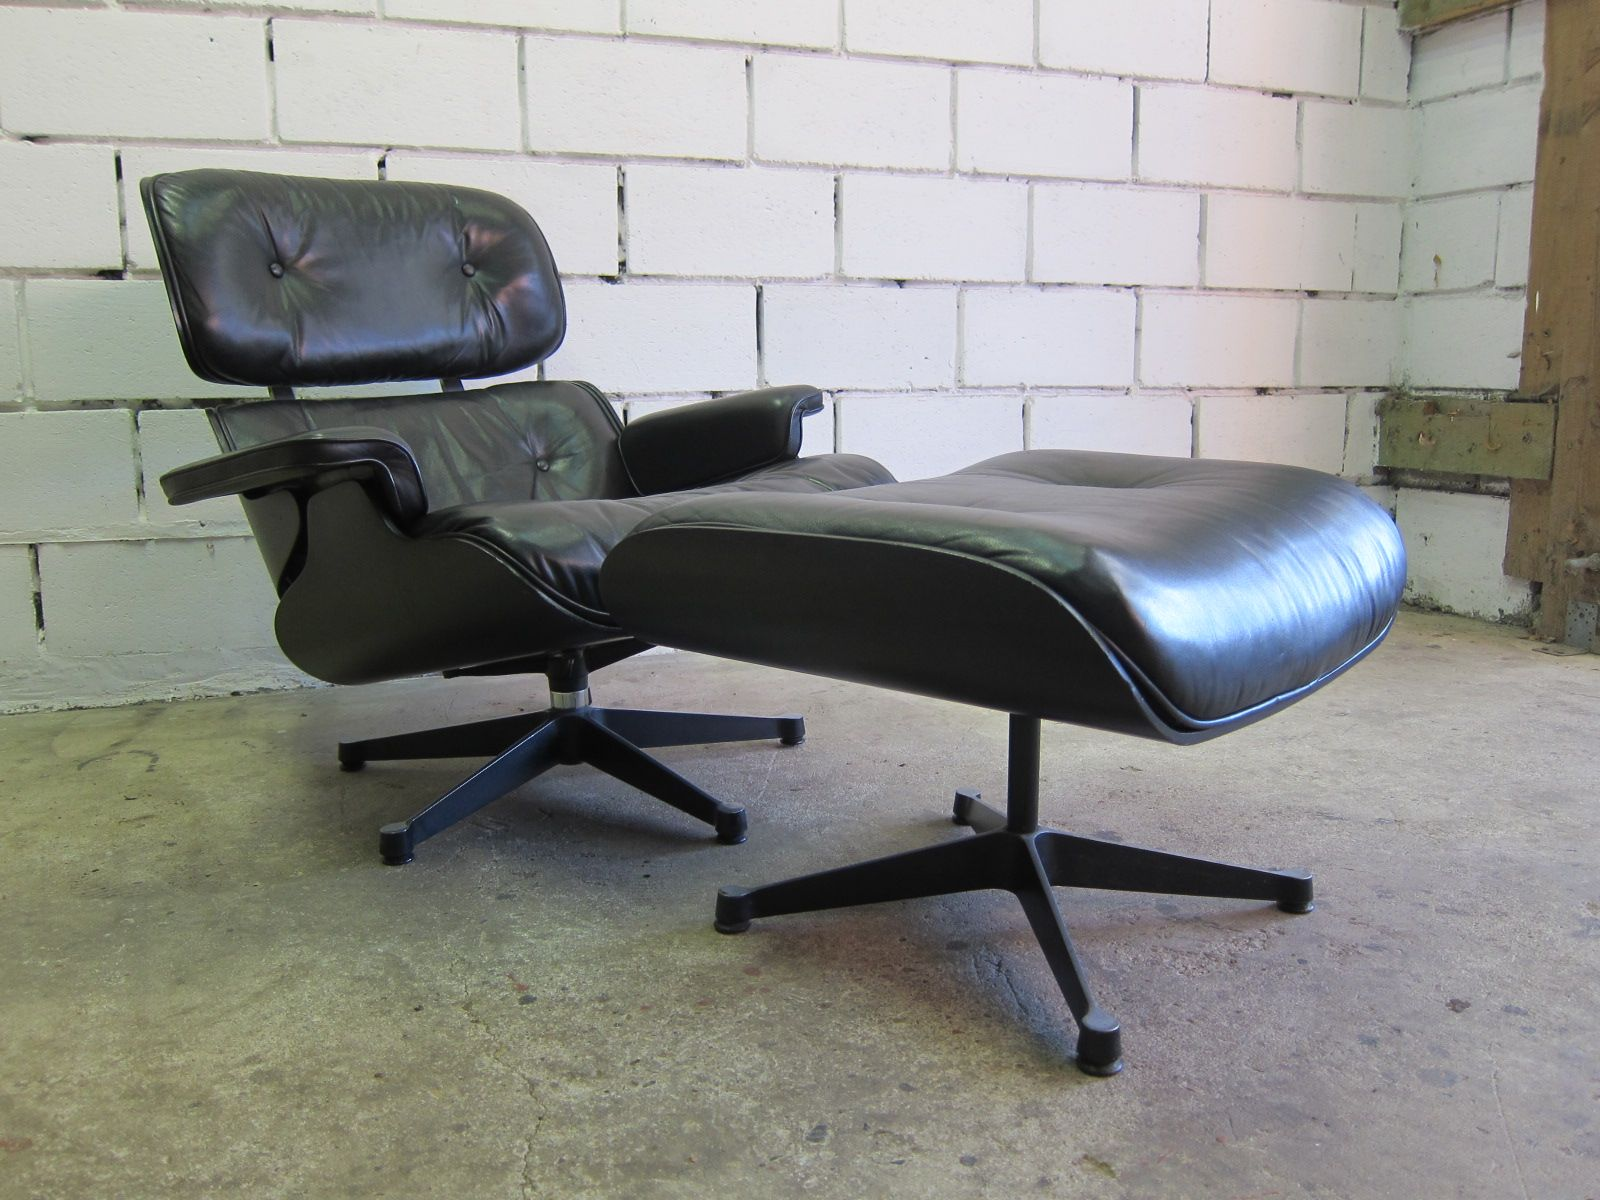 Vitra Eames Lounge Chair Lounge Chair And Ottoman By Charles Ray Eames For Vitra 1978